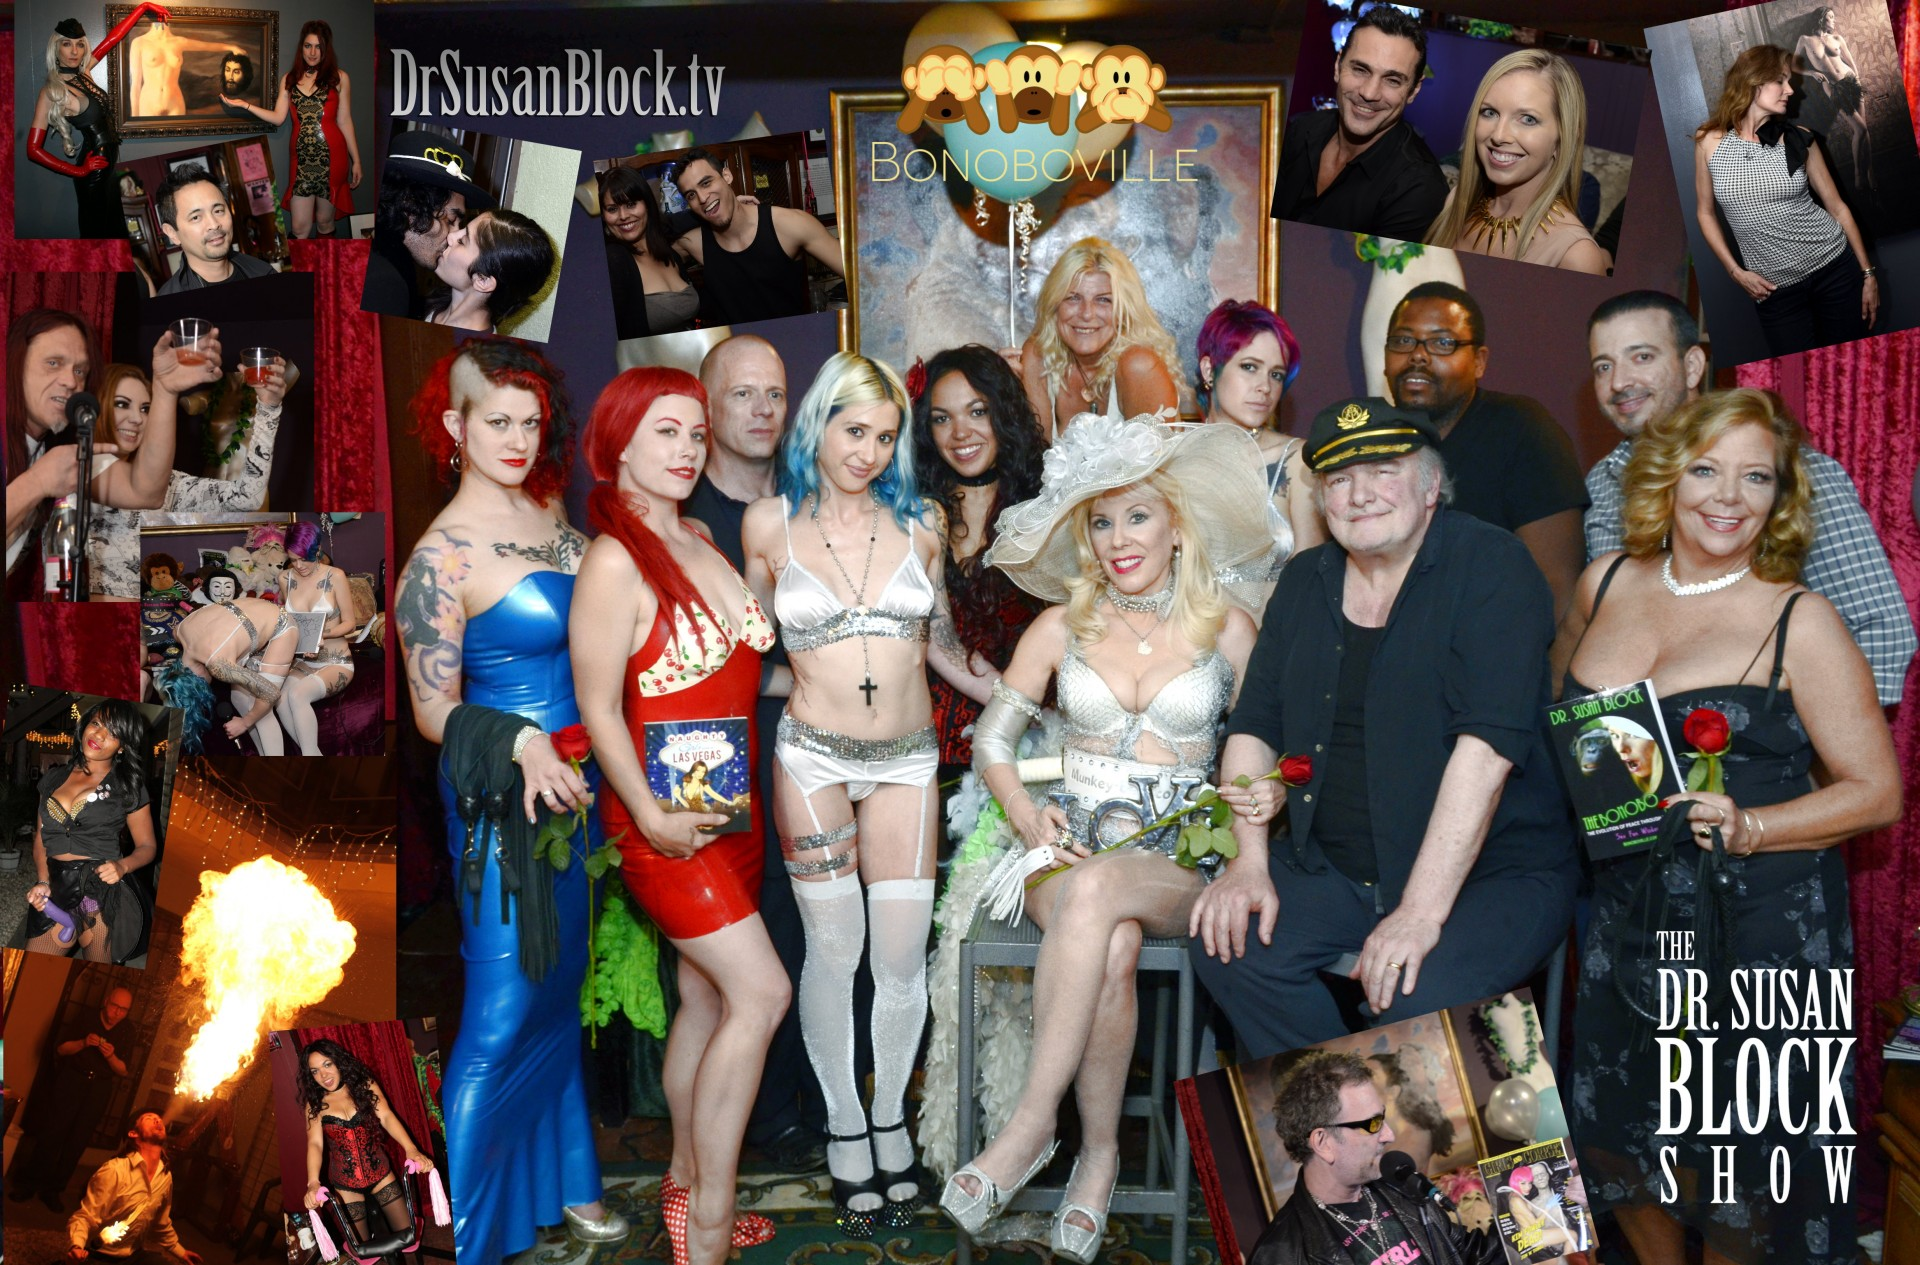 Dr. Suzy & Pr. Max's 23rd Wedding Anniversary (main photo): Goddess Soma Snakeoil, Deanna Deadly, Catherine Imperio, Dr. Susan Block, Pr. Maximillian R. Lobkowicz, Karen Summer with The Bonobo Way. Row 2: Jux Lii, Aaliyah Corsets, Chelsea Raw, Samantha Fairley, Dr. Mars. Inserts from lower left: Mad X Bike, Dark Phoenix, Citizen LA's George Stiehl, Trixie Plenty, Unlicensed Pros, Murrugun the Mystic & Kiki Daire, Anthony Winn, Stacey Dee & Danica W., Keerthi & Nisreen, Lisa V, Hollywood Jake, Keith C, Sienna Sinclaire, Lisa Anne Davis, Corpsy with Girls & Corpses cover featuring Kim Fowley. Photo: Iriwn